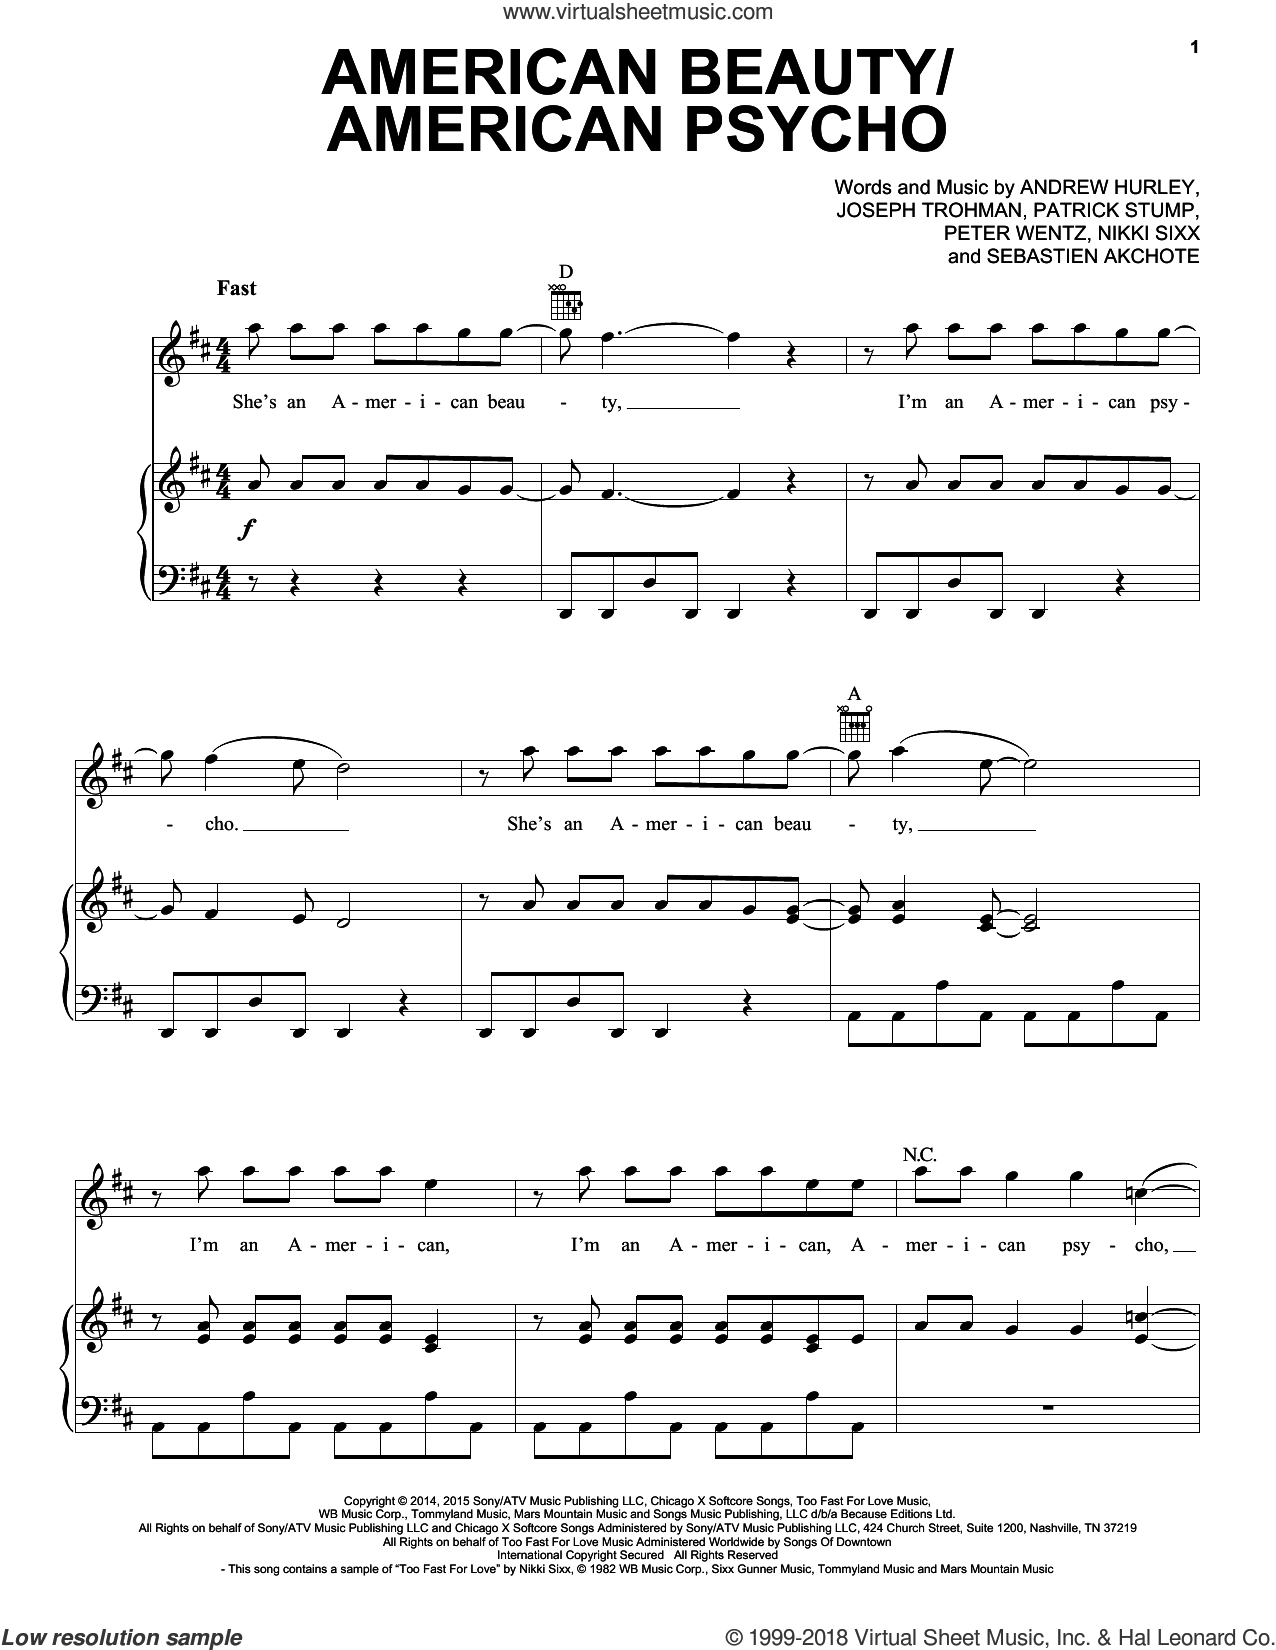 American Beauty/American Psycho sheet music for voice, piano or guitar by Sebastien Akchote, Fall Out Boy, Andrew Hurley, Nikki Sixx and Peter Wentz. Score Image Preview.